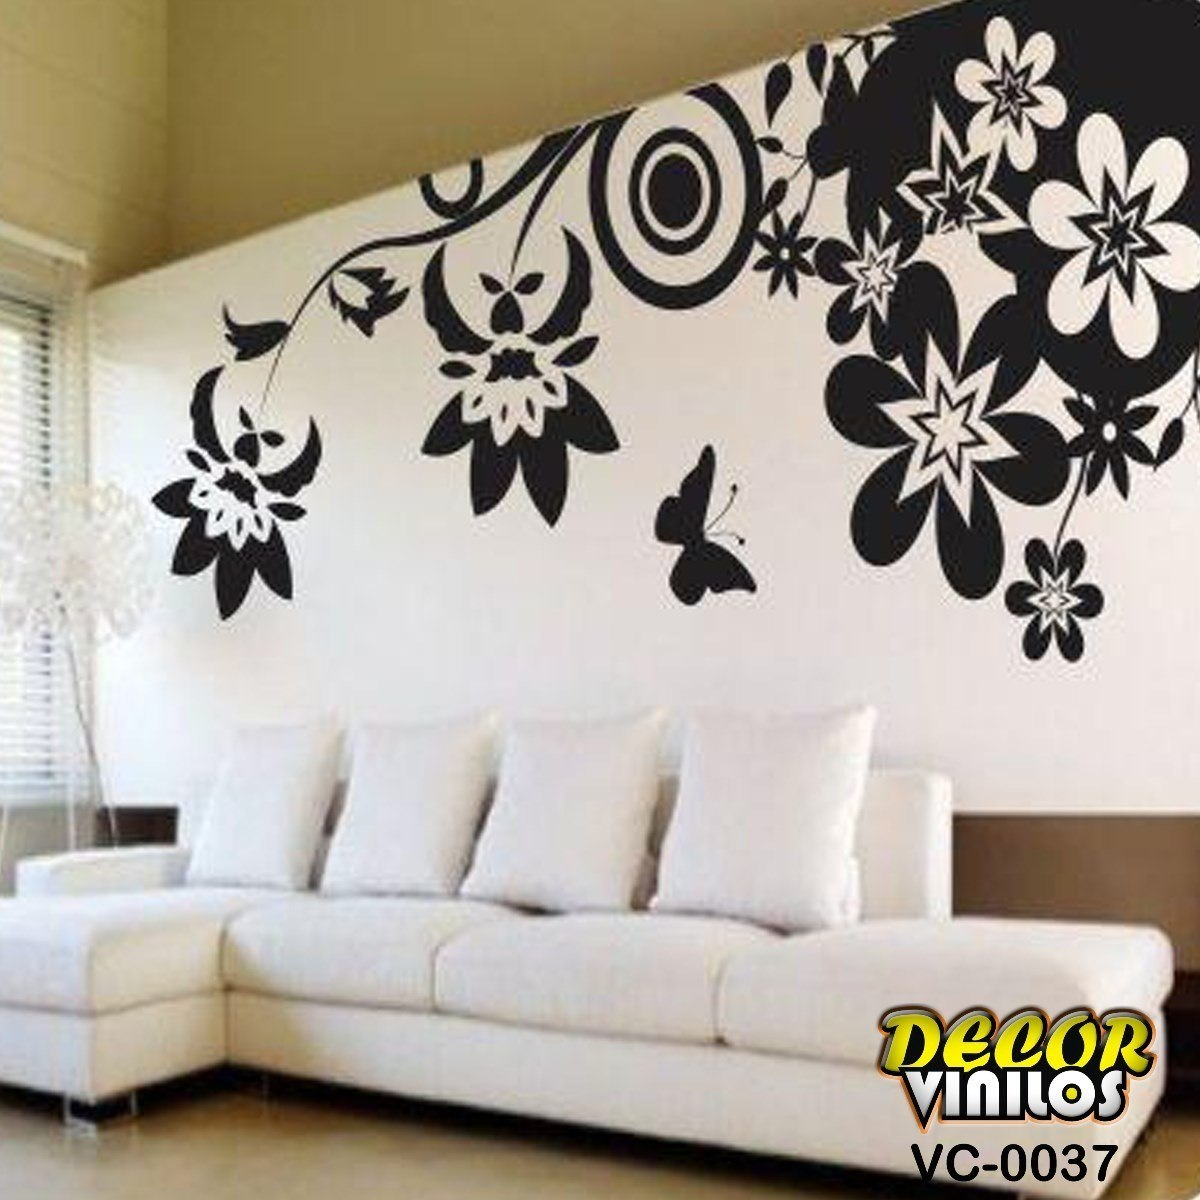 Vinilos decorativos pared vinilos pared vinilos para for Vinilos decorativos adhesivos pared